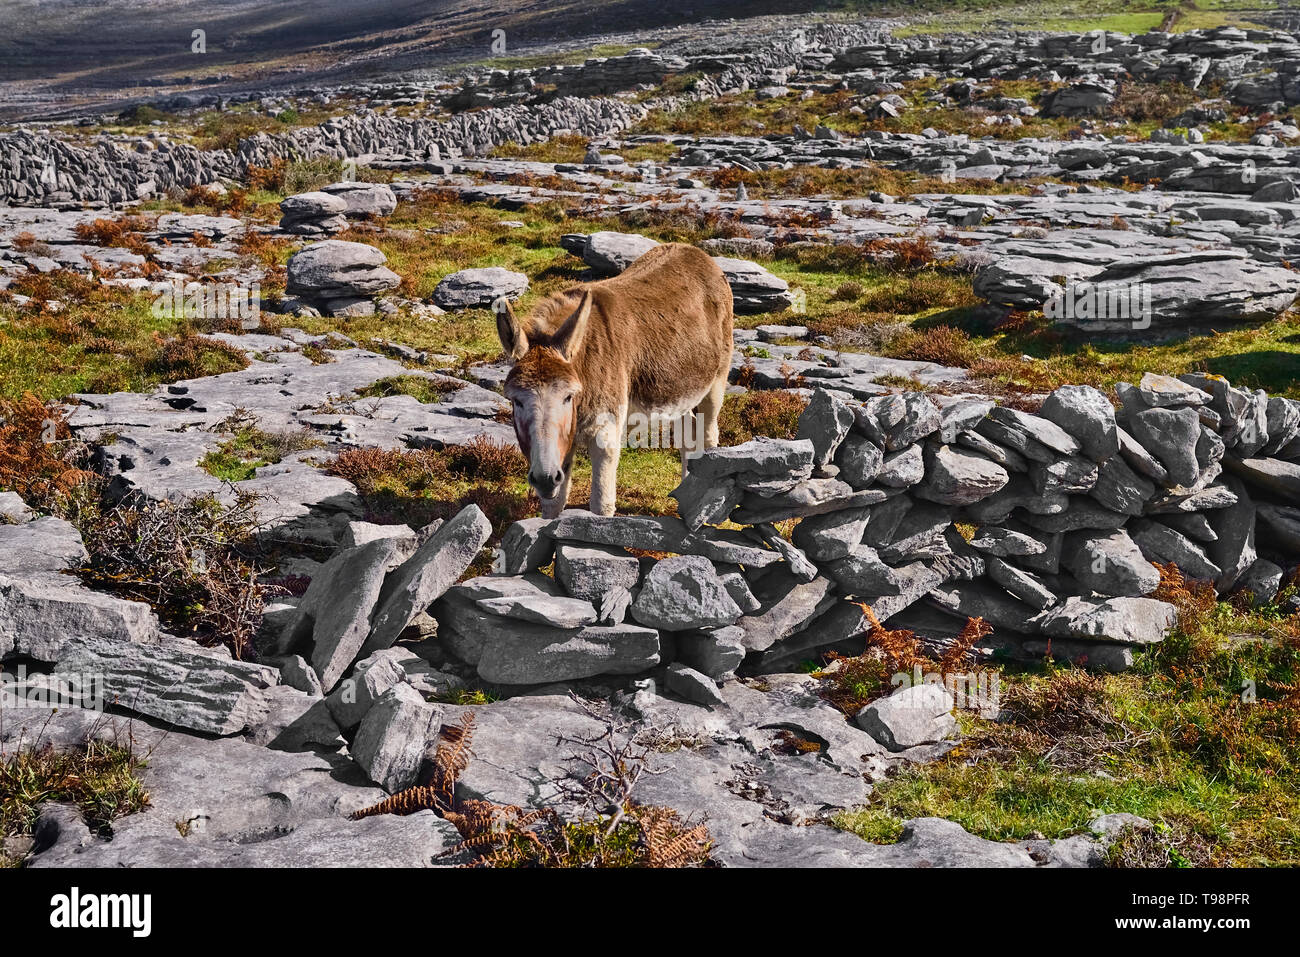 Ireland, County Clare, The Burren, Donkey grazing amidst typical rocky terrain with dry stone wall behind. - Stock Image